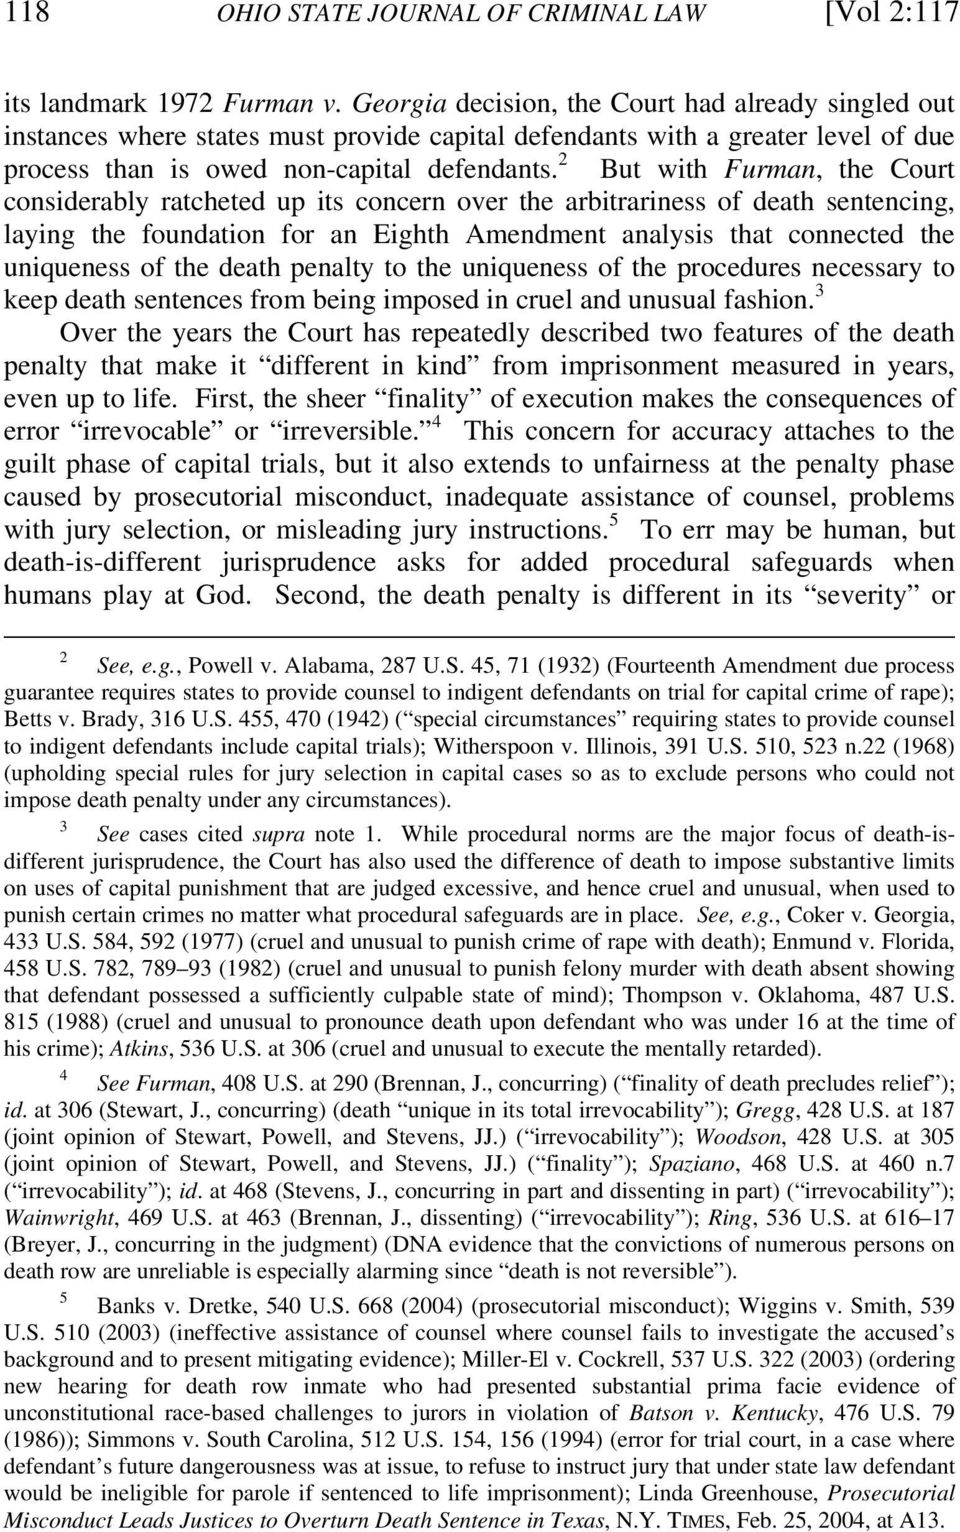 2 But with Furman, the Court considerably ratcheted up its concern over the arbitrariness of death sentencing, laying the foundation for an Eighth Amendment analysis that connected the uniqueness of